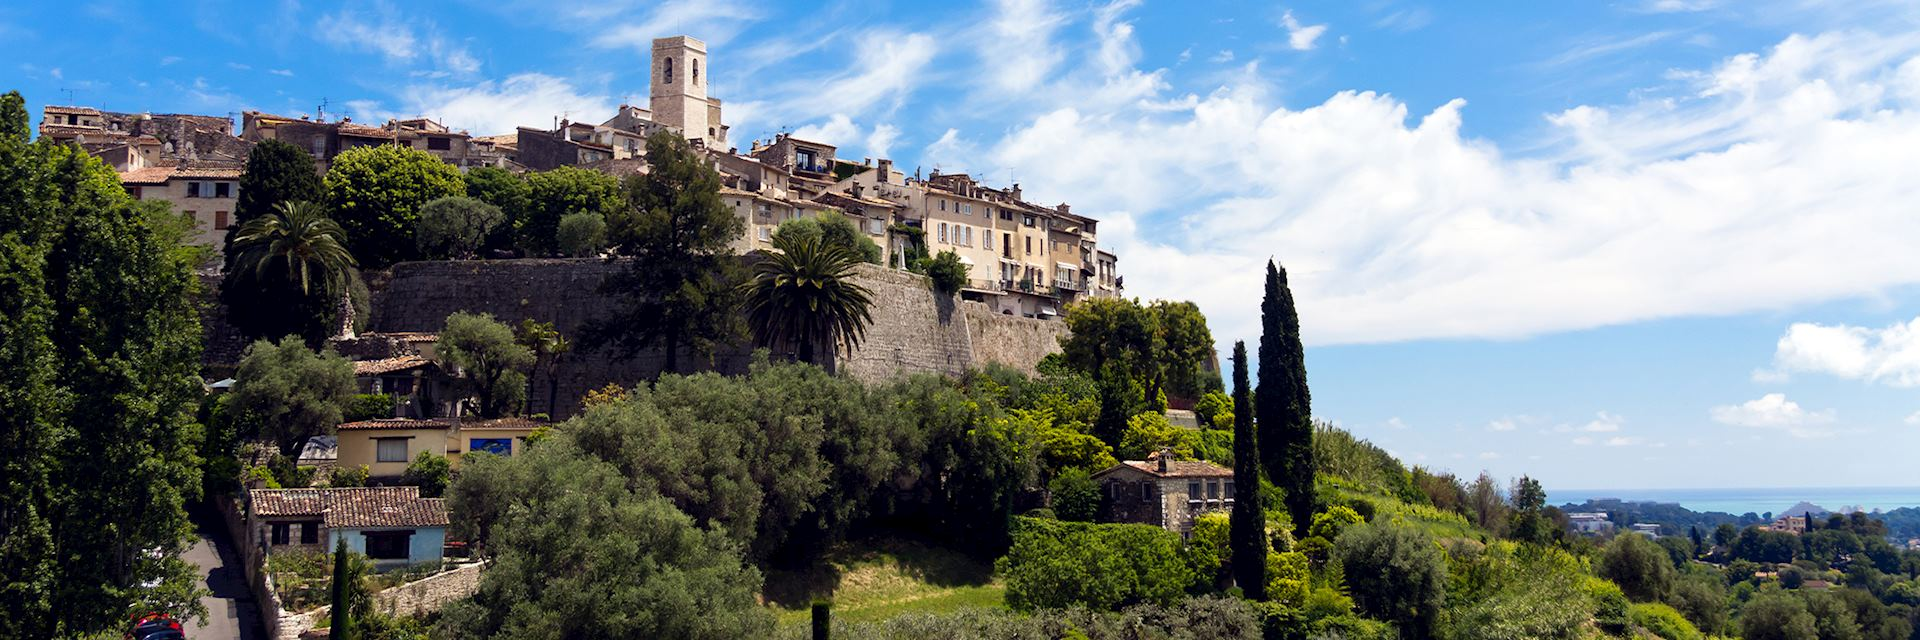 Panorama of Saint Paul de Vence (Cote d'Azur) France